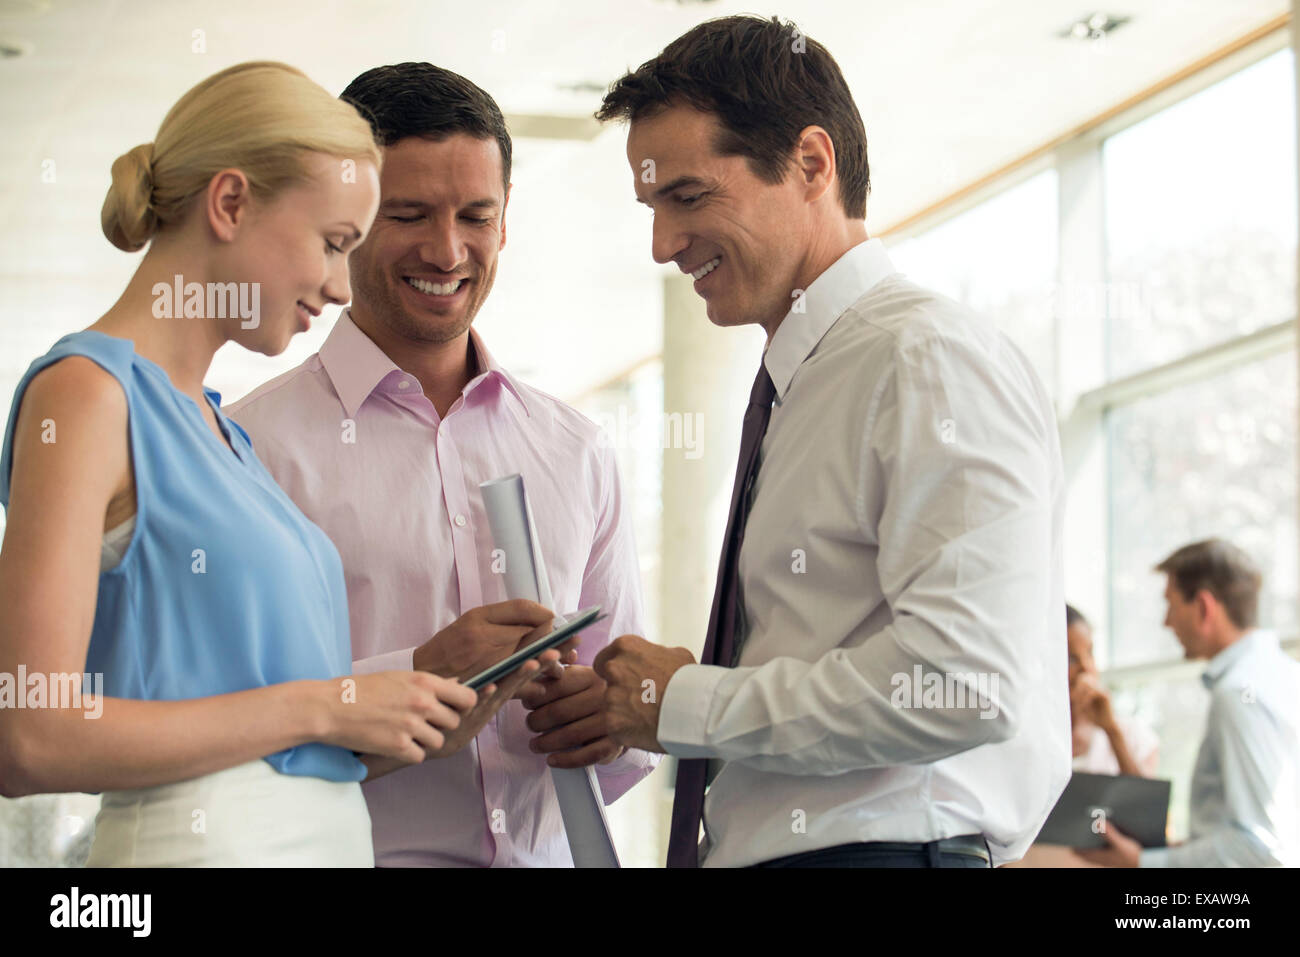 Business colleagues conversing and using digital tablet - Stock Image